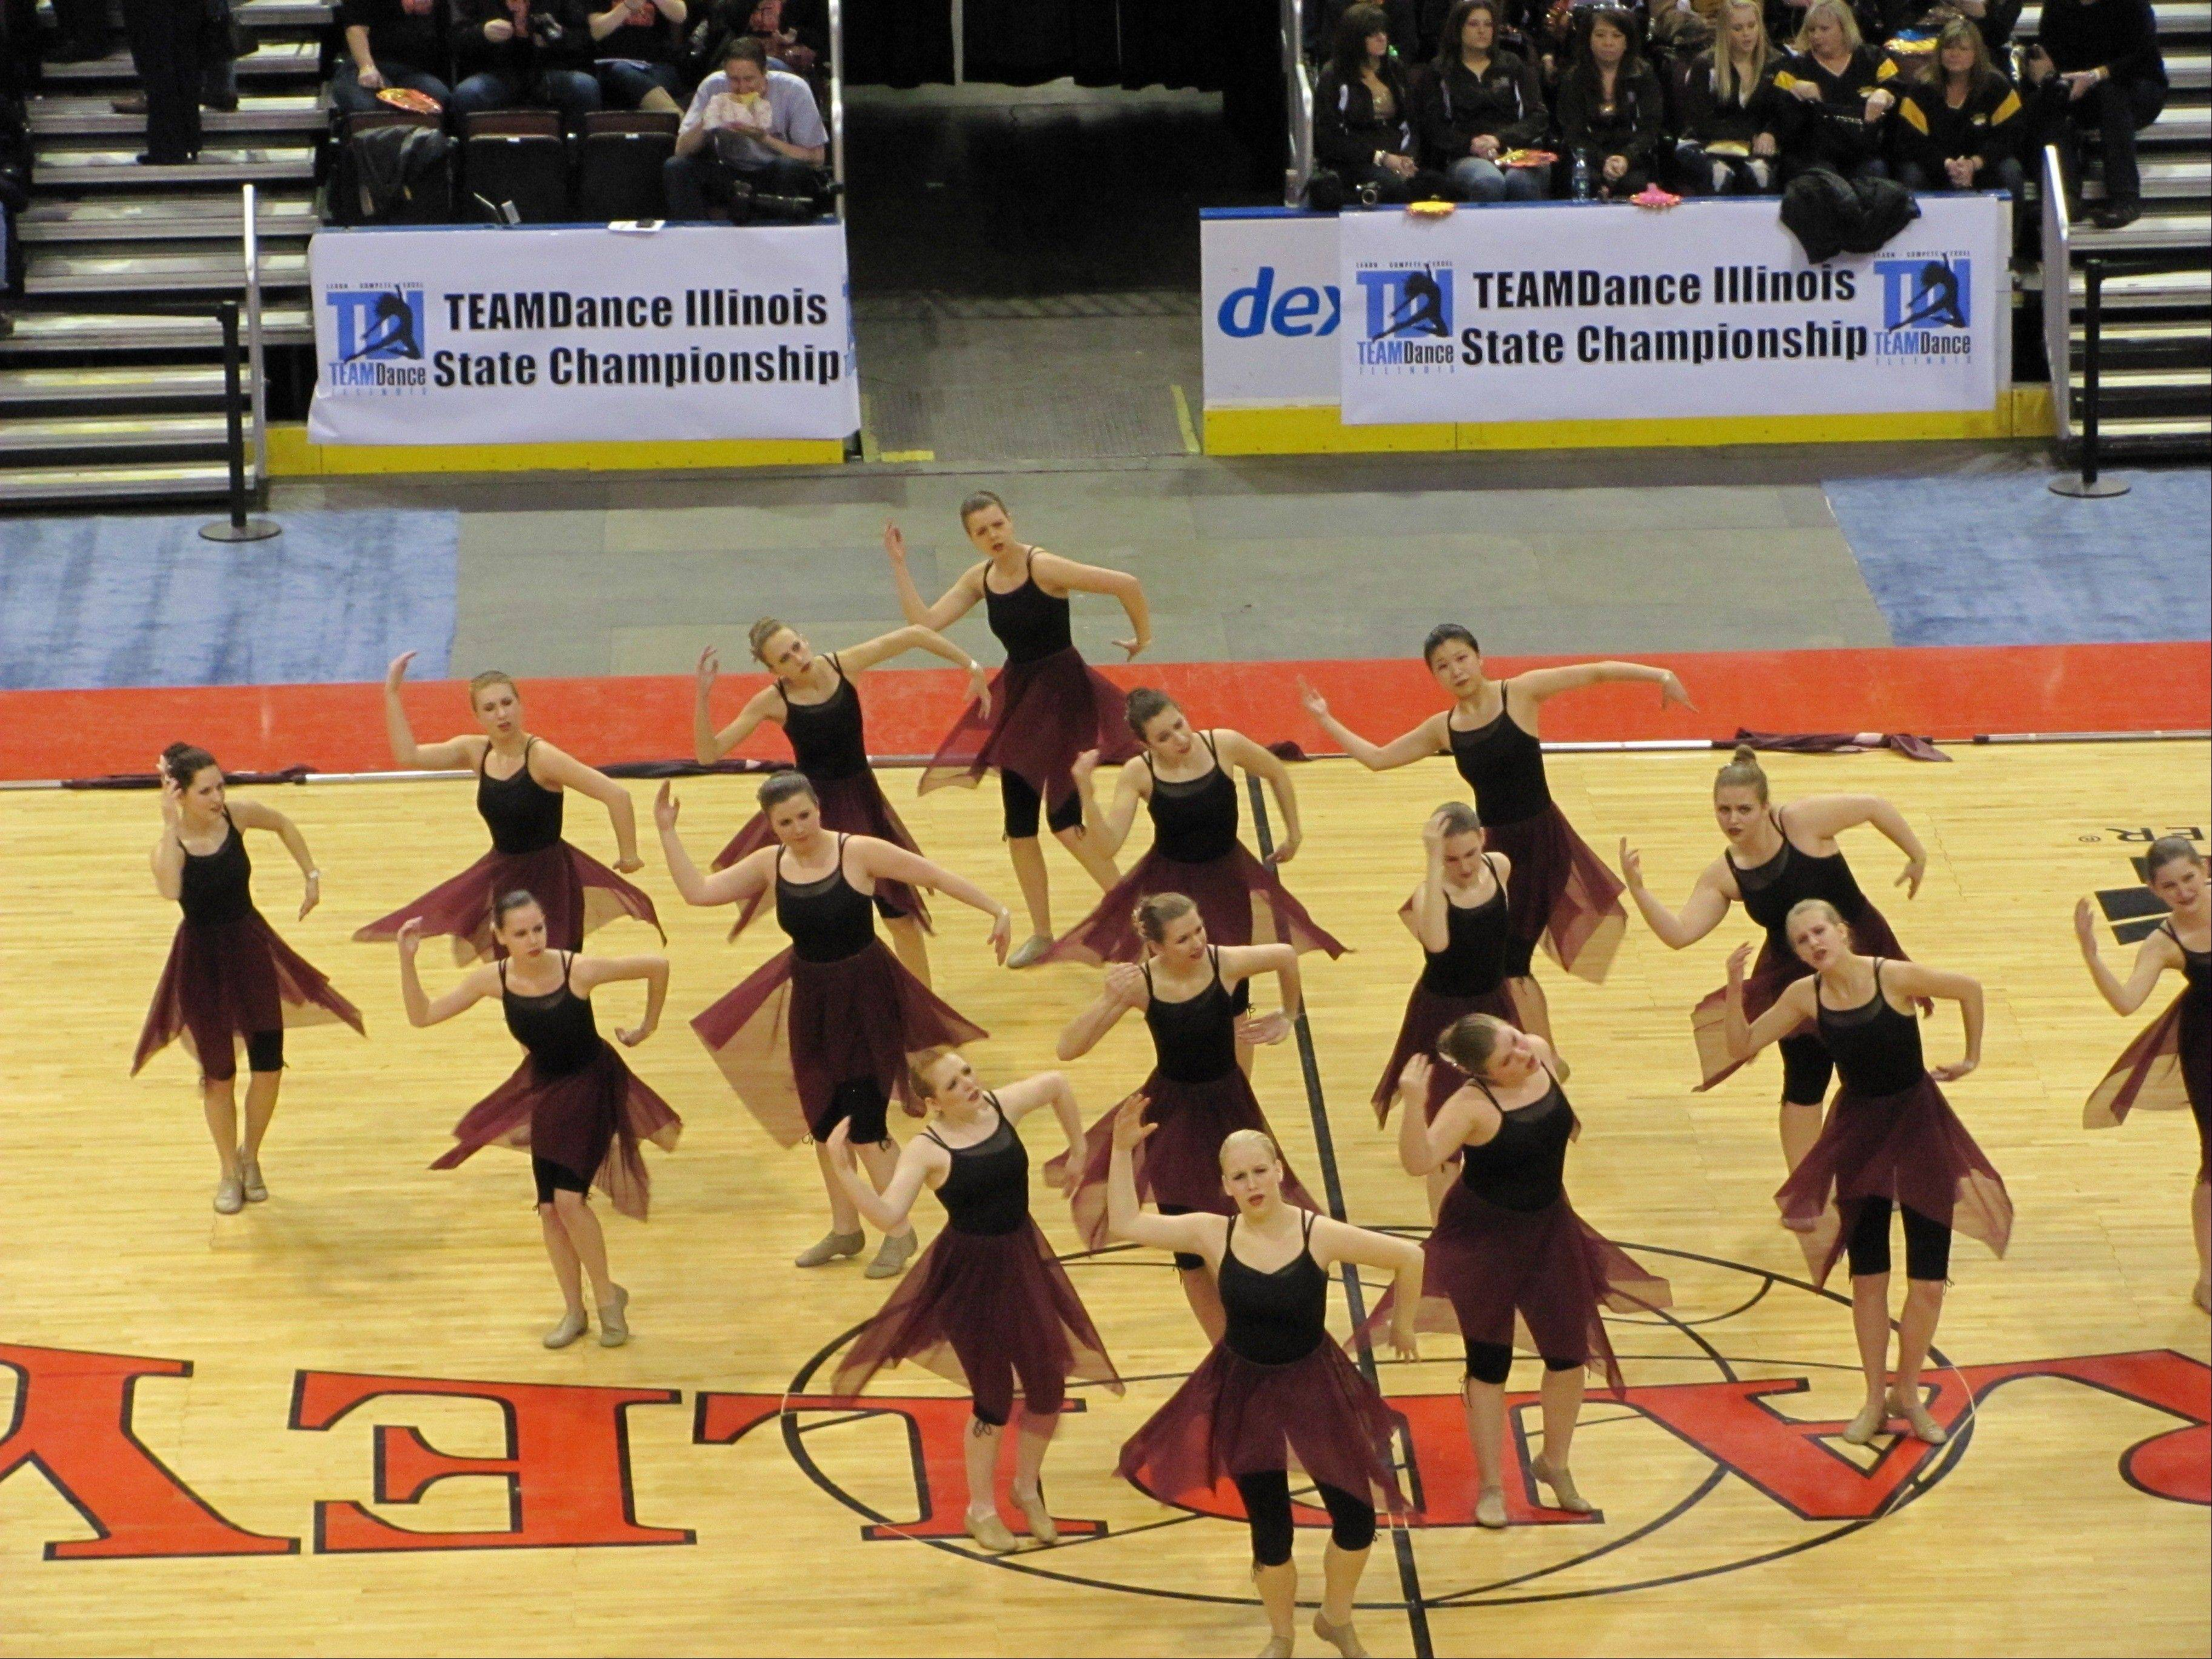 PHOTO COURTESY OF District 211The Fremd Vikette Flag Team performs at the Team Dance Illinois competition in Peoria on Sunday. The team was named the traditional flag grand champion after placing first out of five teams.